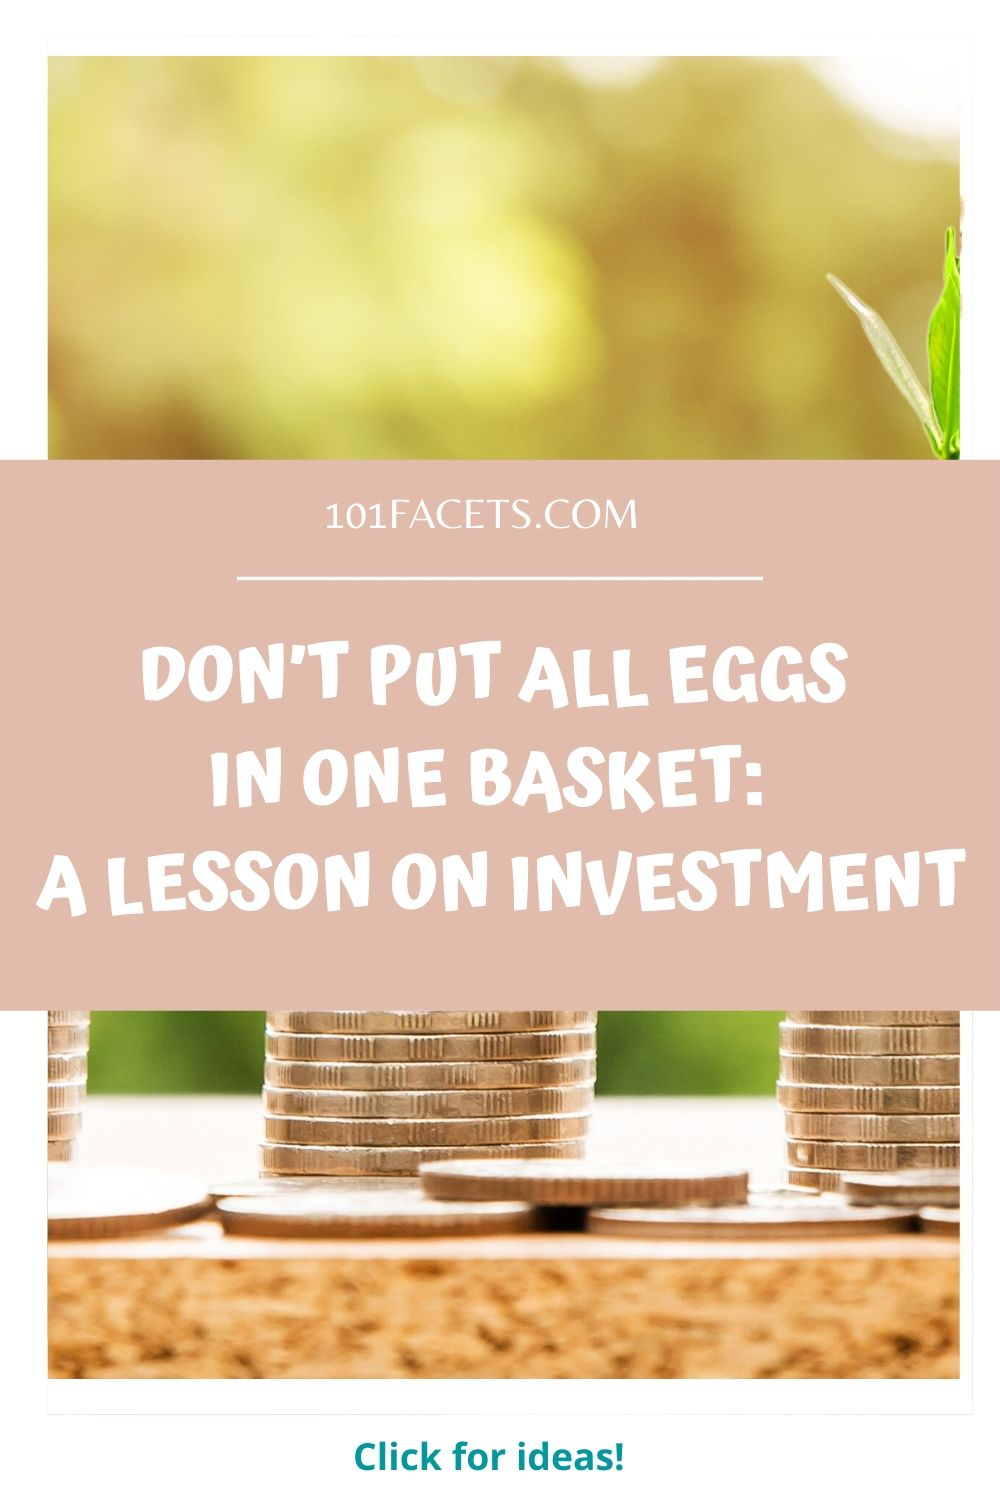 Don't Put All Eggs in One Basket: A Lesson on Investment